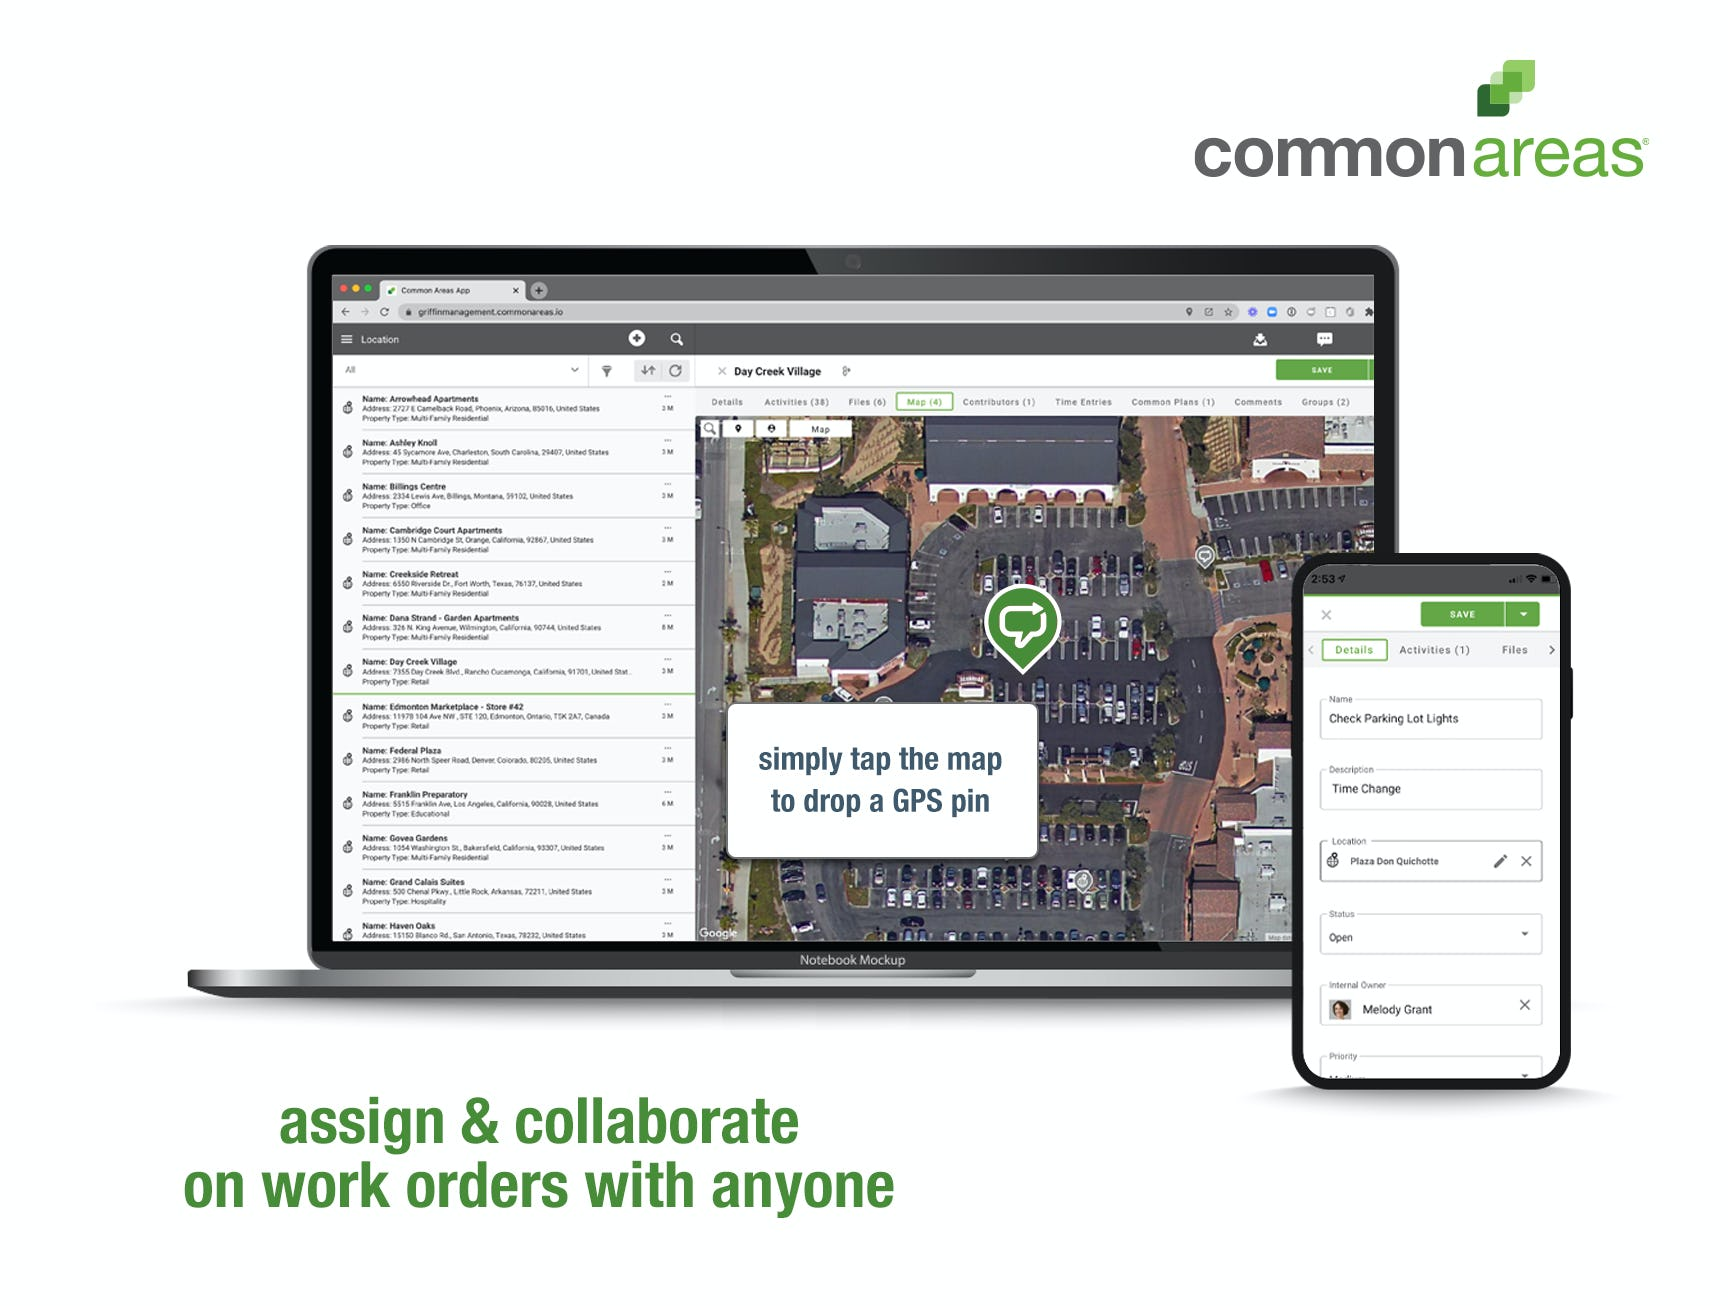 Create, assign and track work orders with everyone you work with inside or outside of your company. Easily provide everything needed for you and your teams to get the work done right including files, photos, GPS pins, status notifications and more.